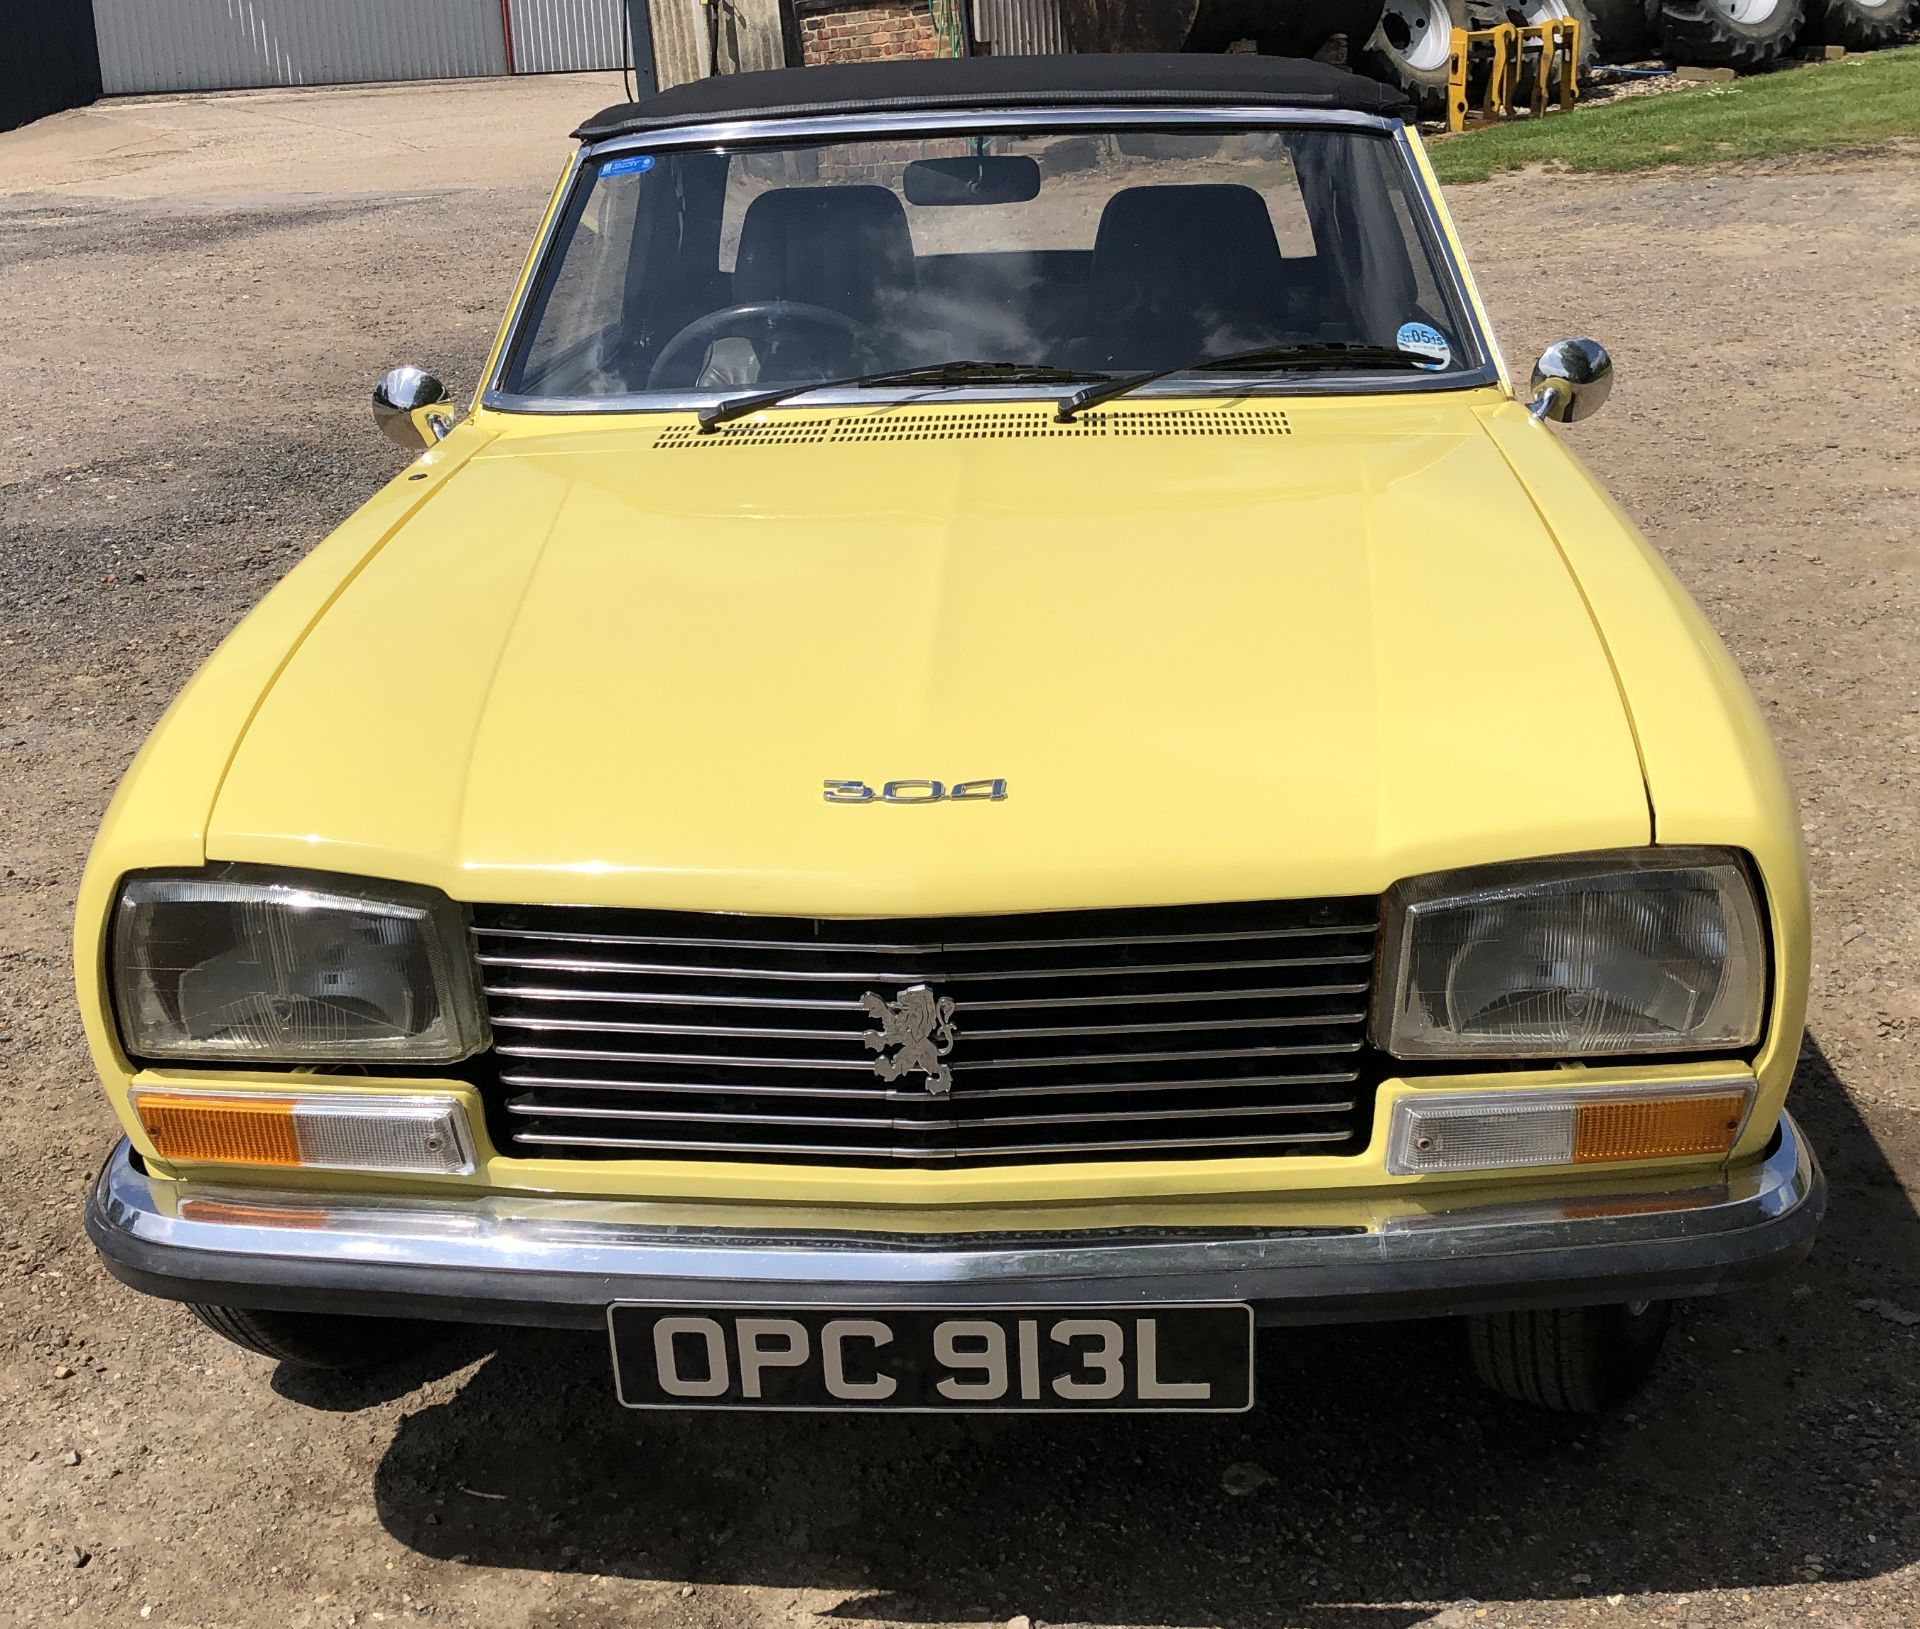 Rare Right Hand Drive Peugeot 304 Convertible, Registration OPC 913L, First Registered 2nd - Image 8 of 48